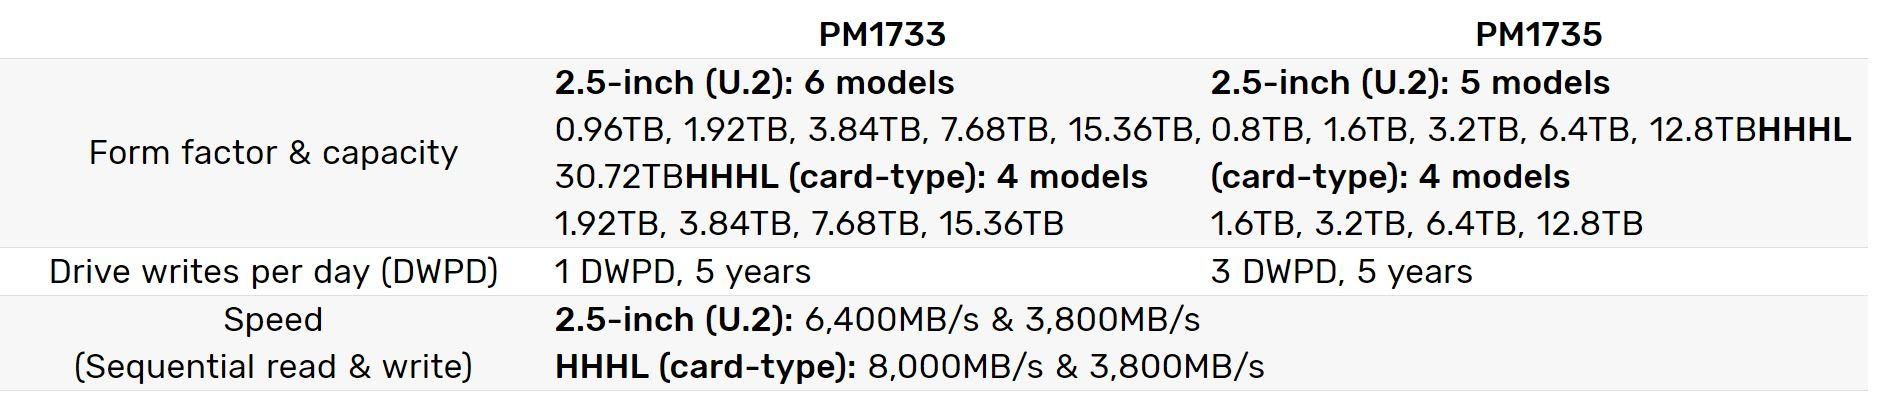 Samsung PM1733 And PM1735 Spec Table